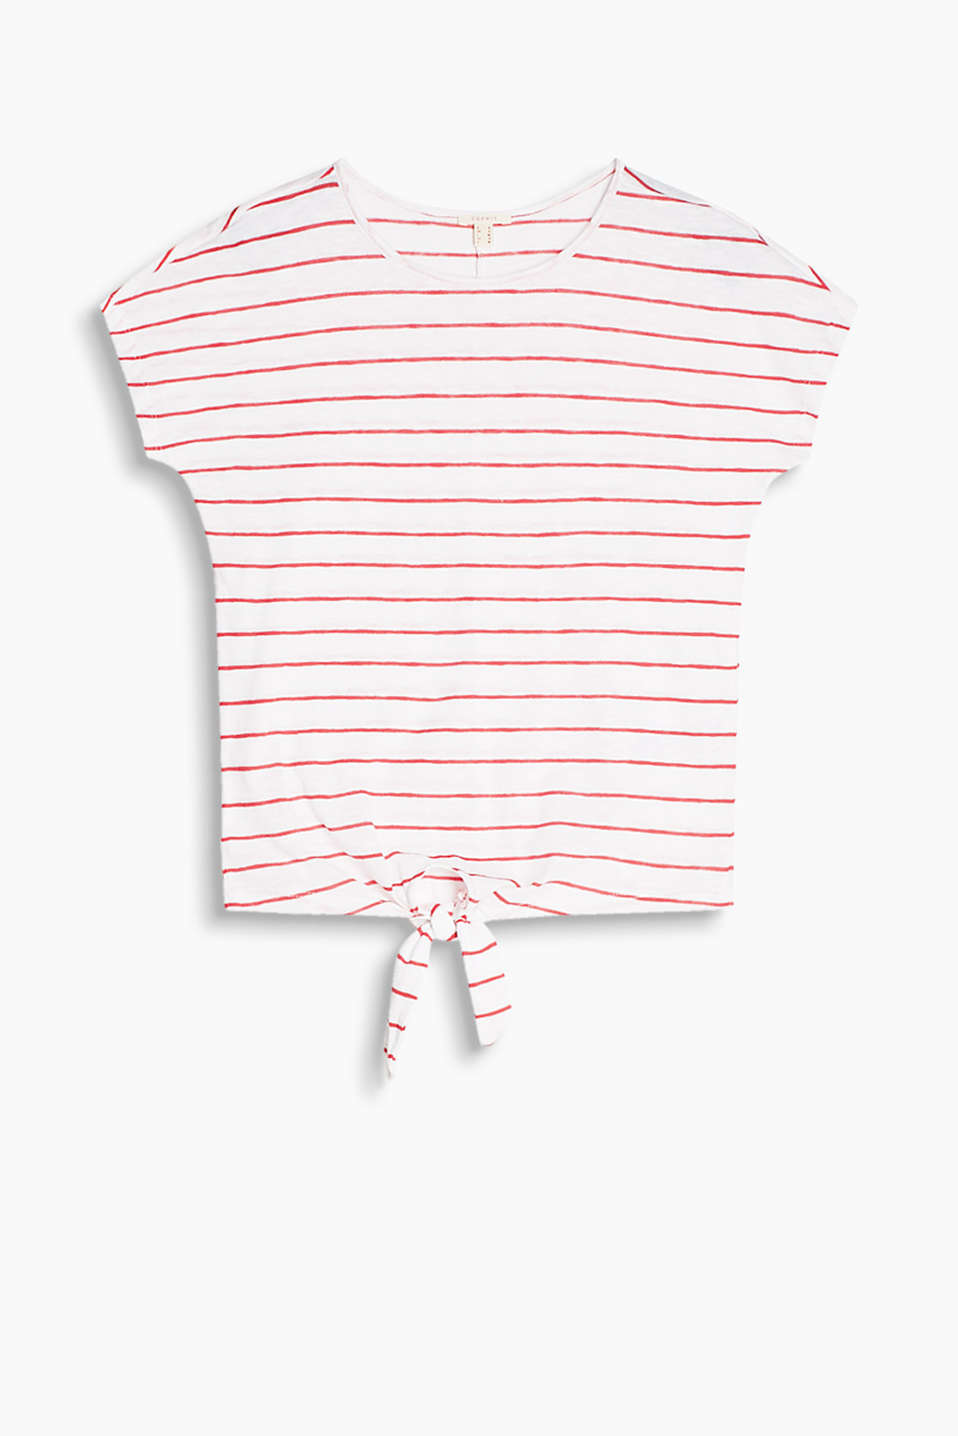 Flowing T-shirt in 100% cotton with a knotted detail at the side on the front of the hem in a trendy striped look